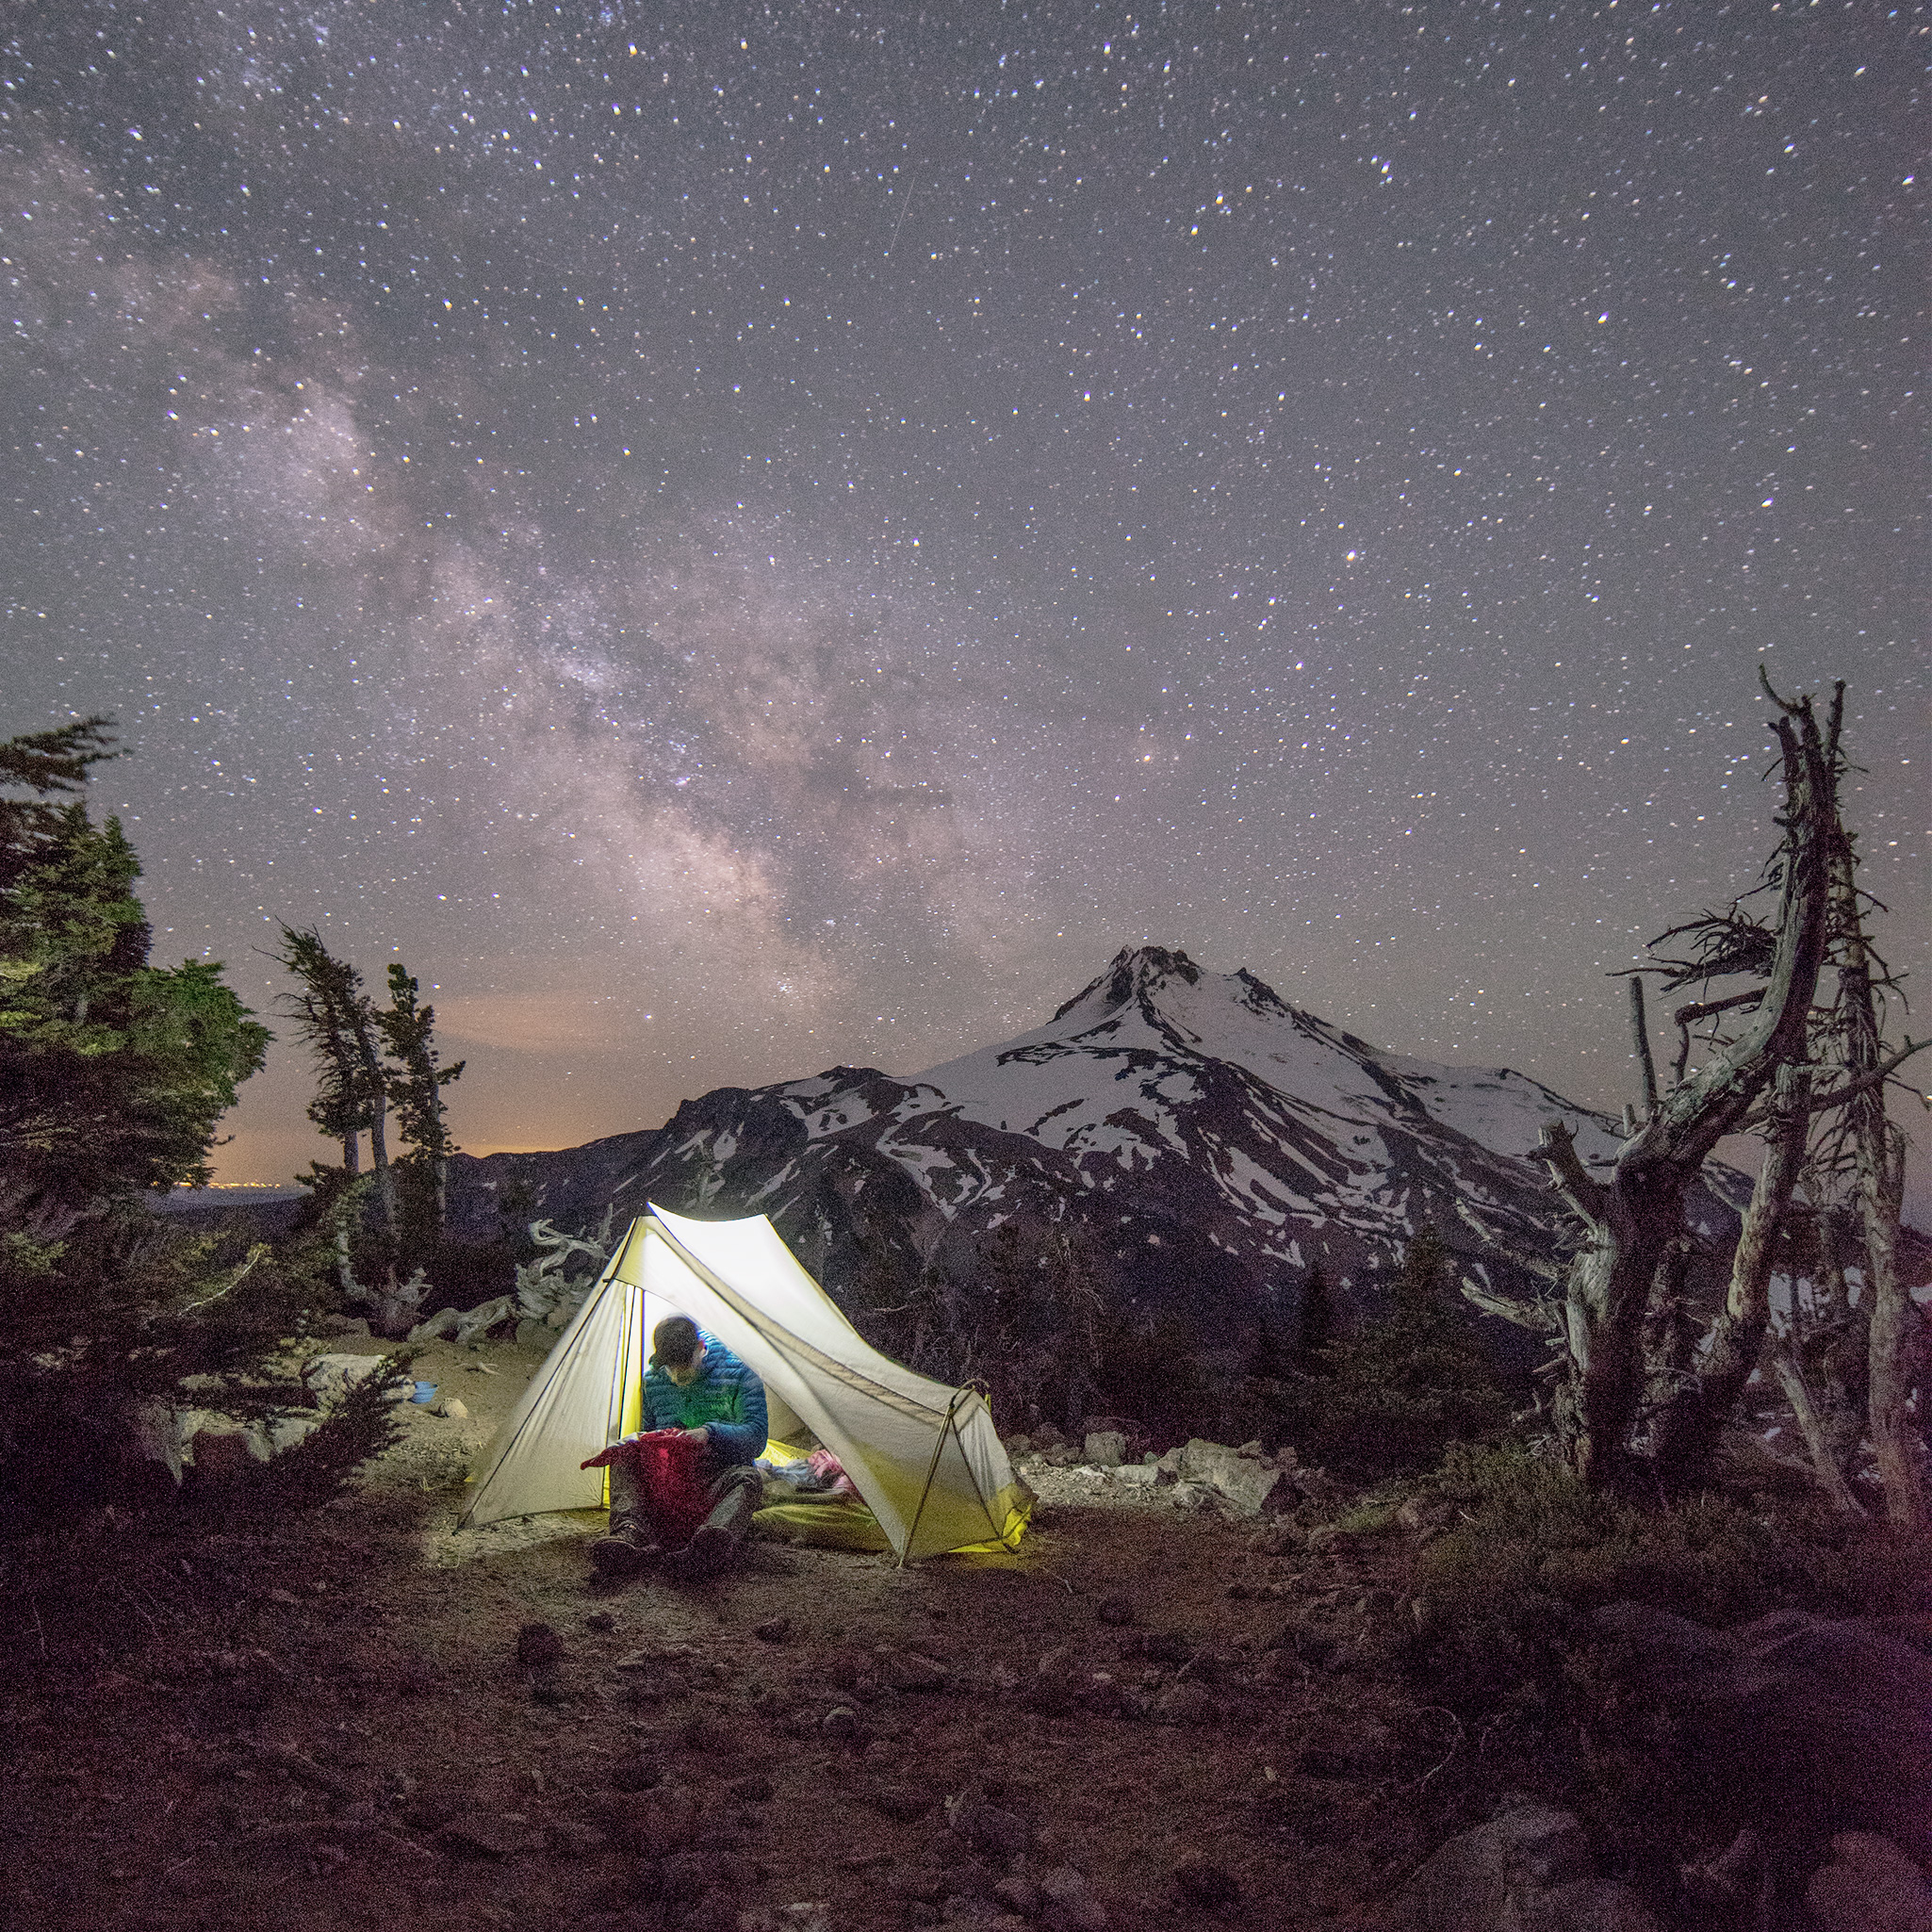 Man in tent at night with Mt. Jefferson and Milky Way stars in the distance.